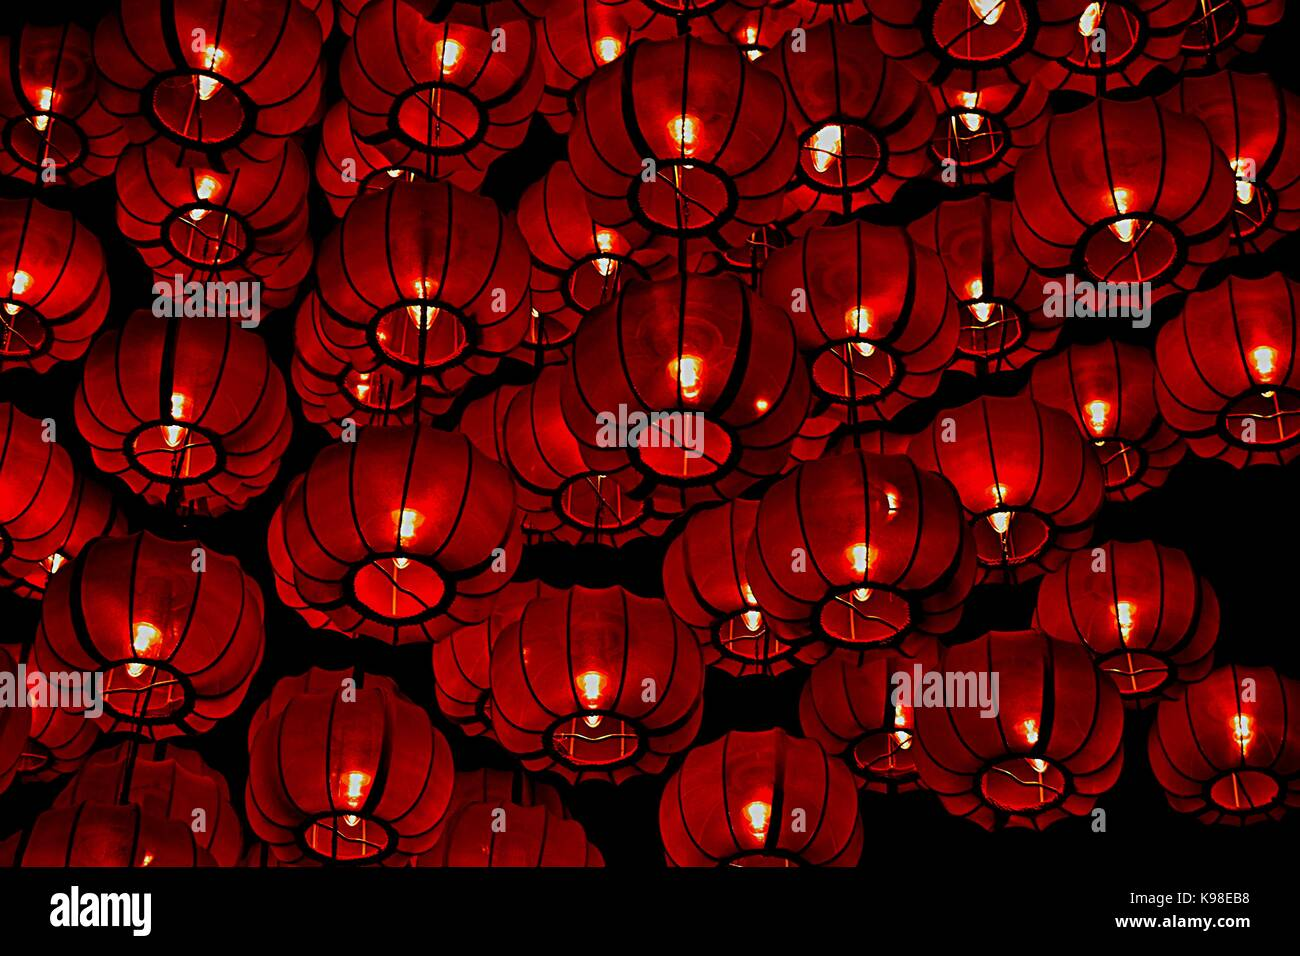 Red silk Chinese lanterns hanging in a large cluster during